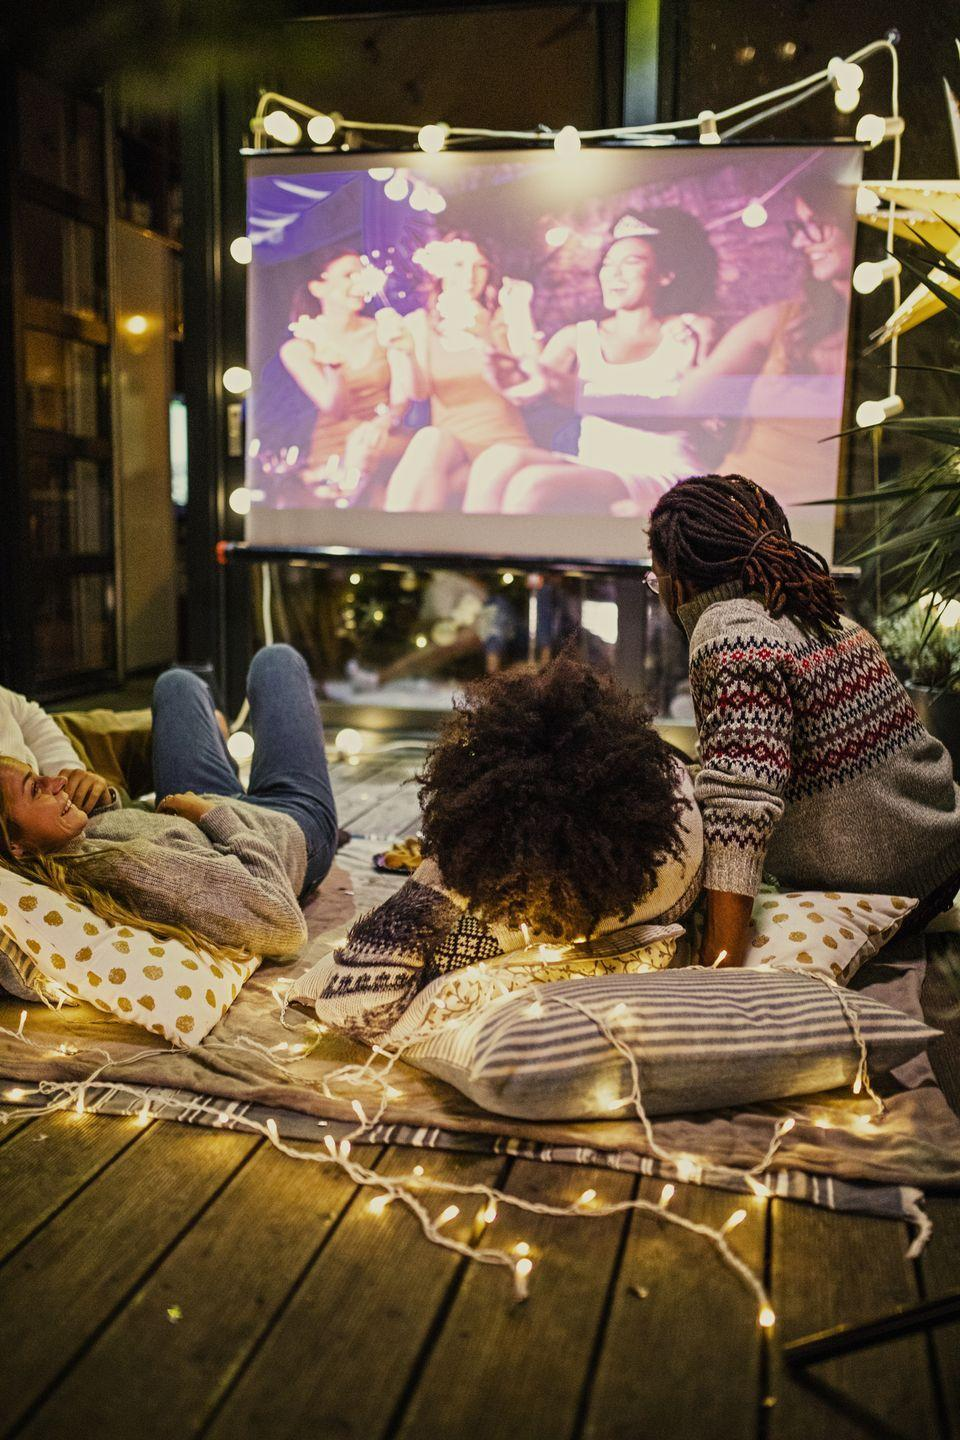 <p>Sure, the New Year's Eve movie genre isn't as established as the Christmas one, but there are a few classics you can always turn to. Light a few candles and settle in with some snacks and champagne for a cozy holiday you'll always remember. </p>